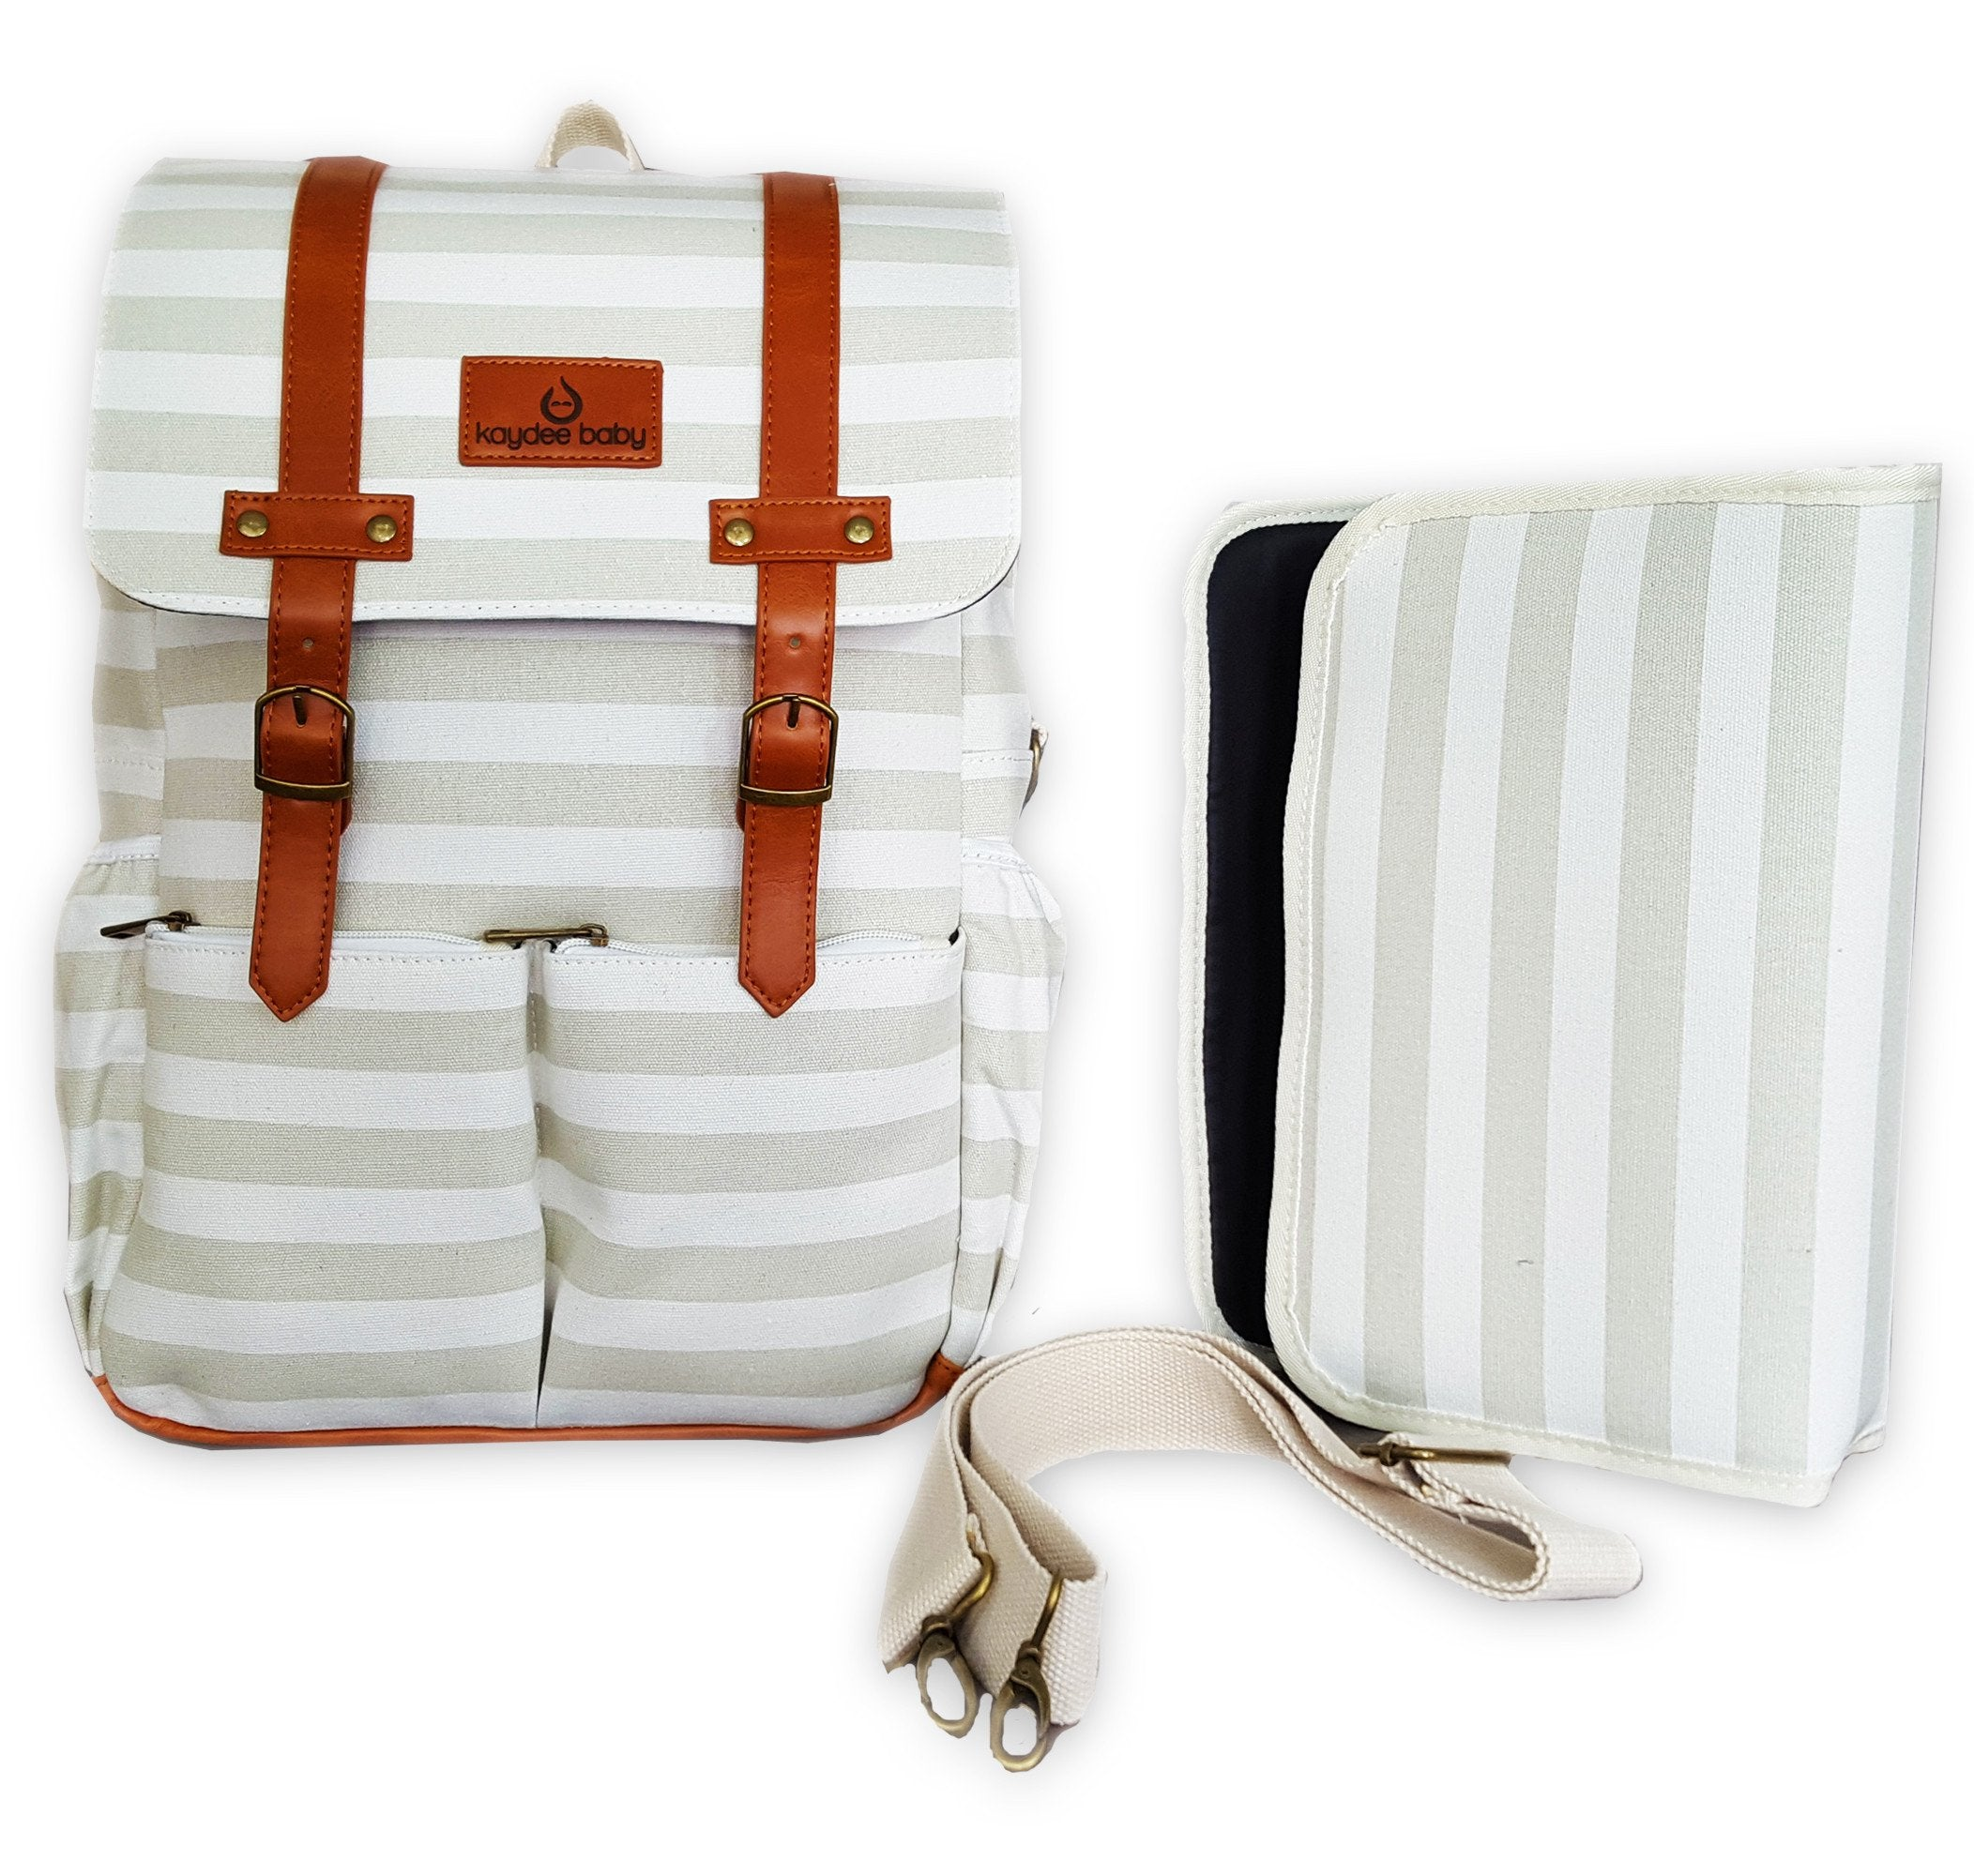 Kaydee Baby Backpack: Now In Gray Stripes!